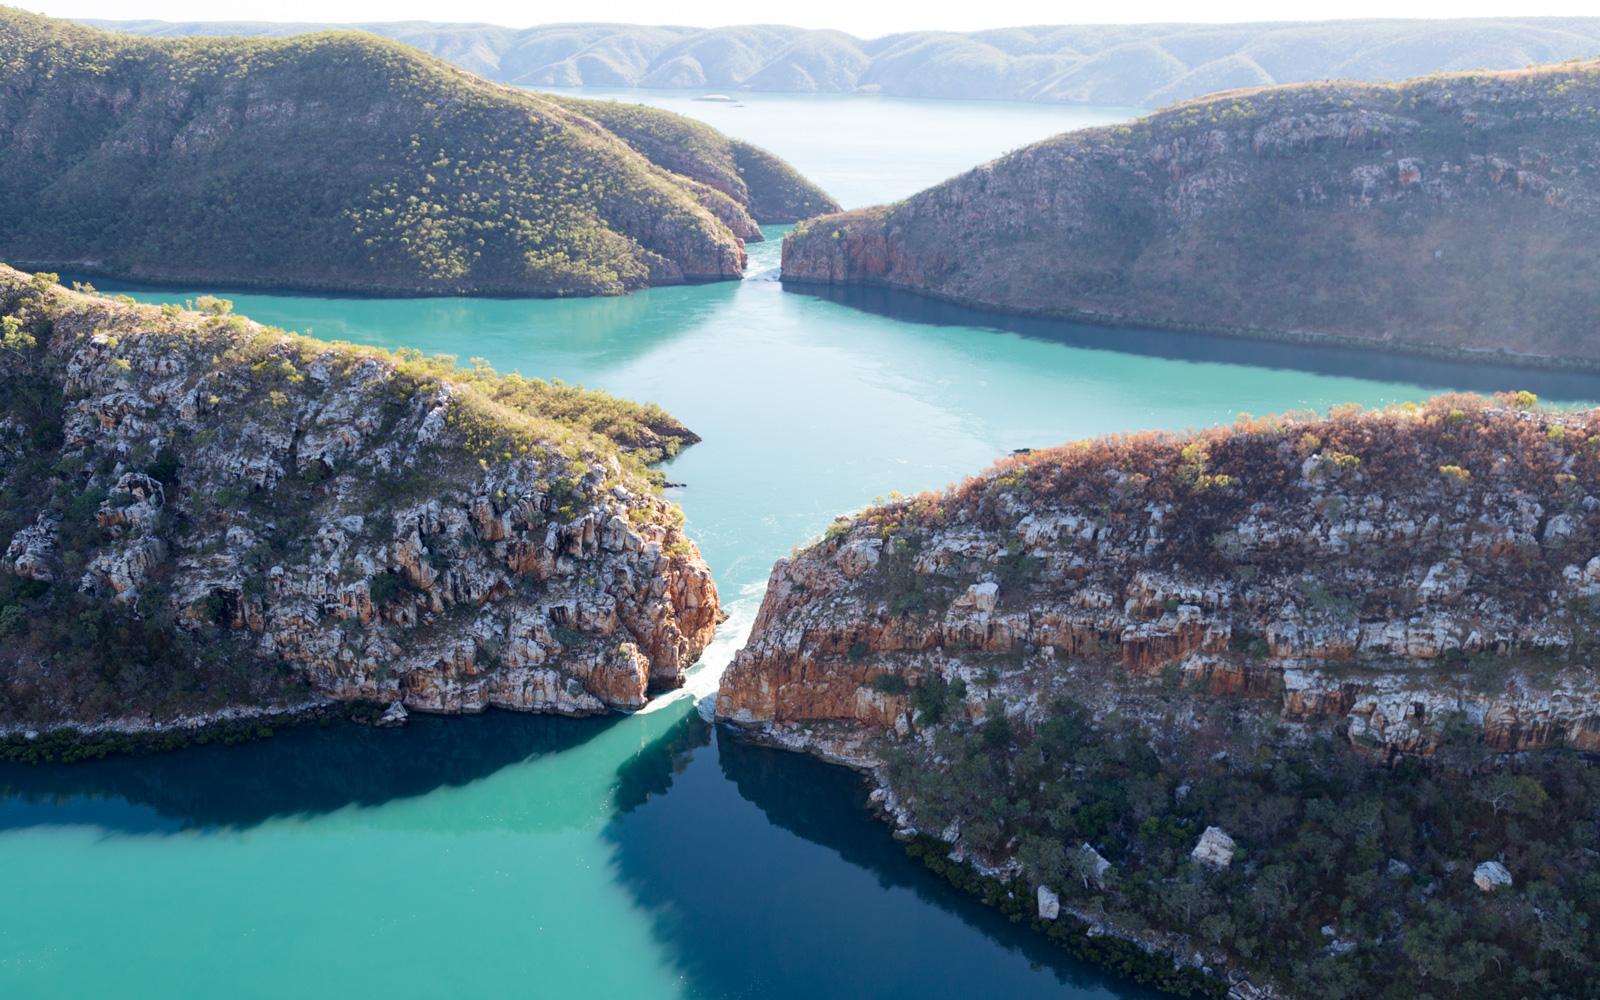 Horizontal Falls are described as 'One of the greatest wonders of the natural world'.